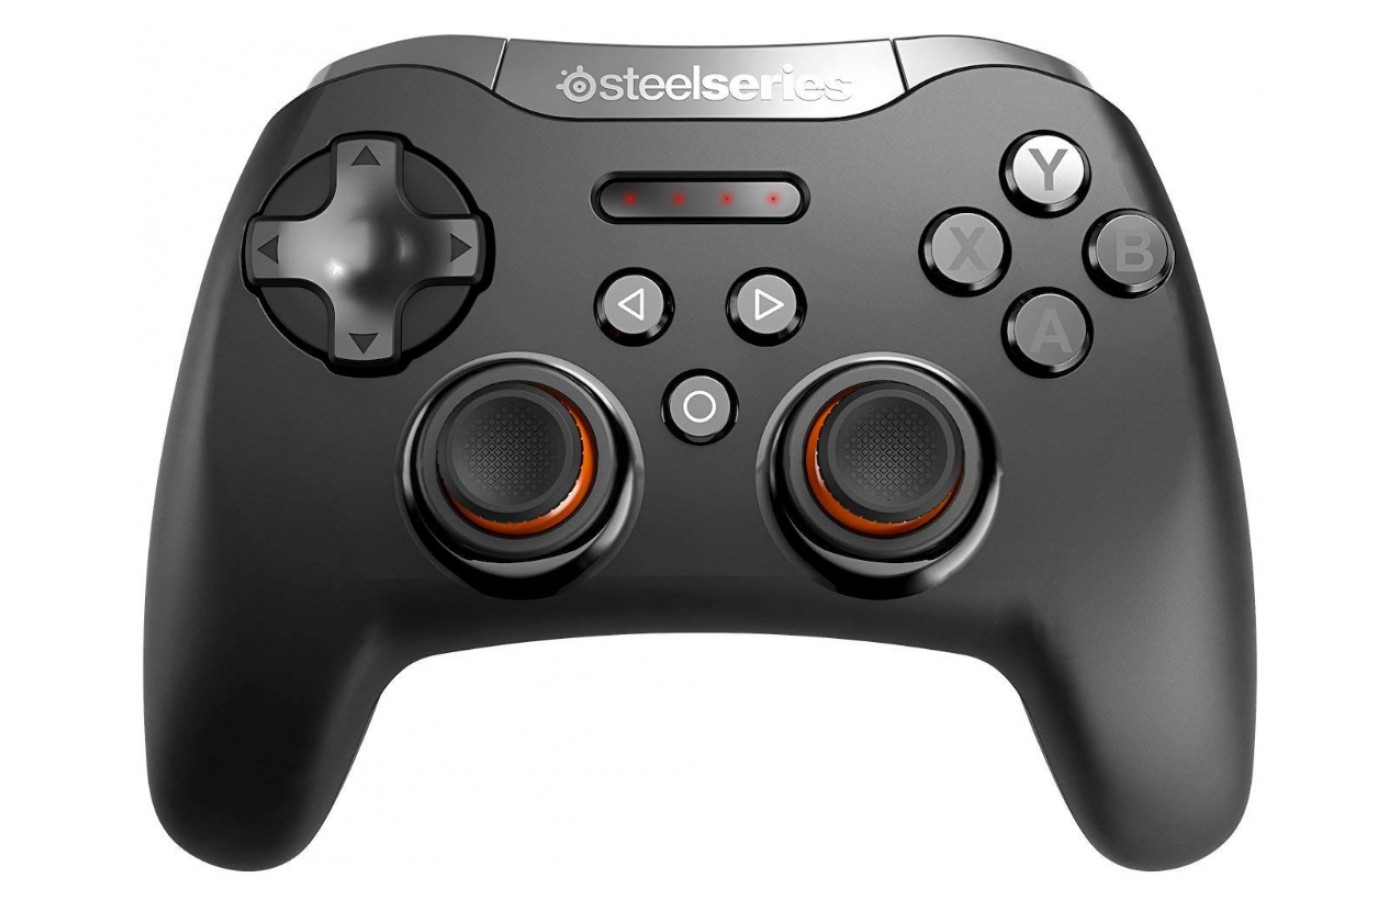 Though it can be used by PC gamers, it can also be used on Apple iOS and Android just as easily and effectively.